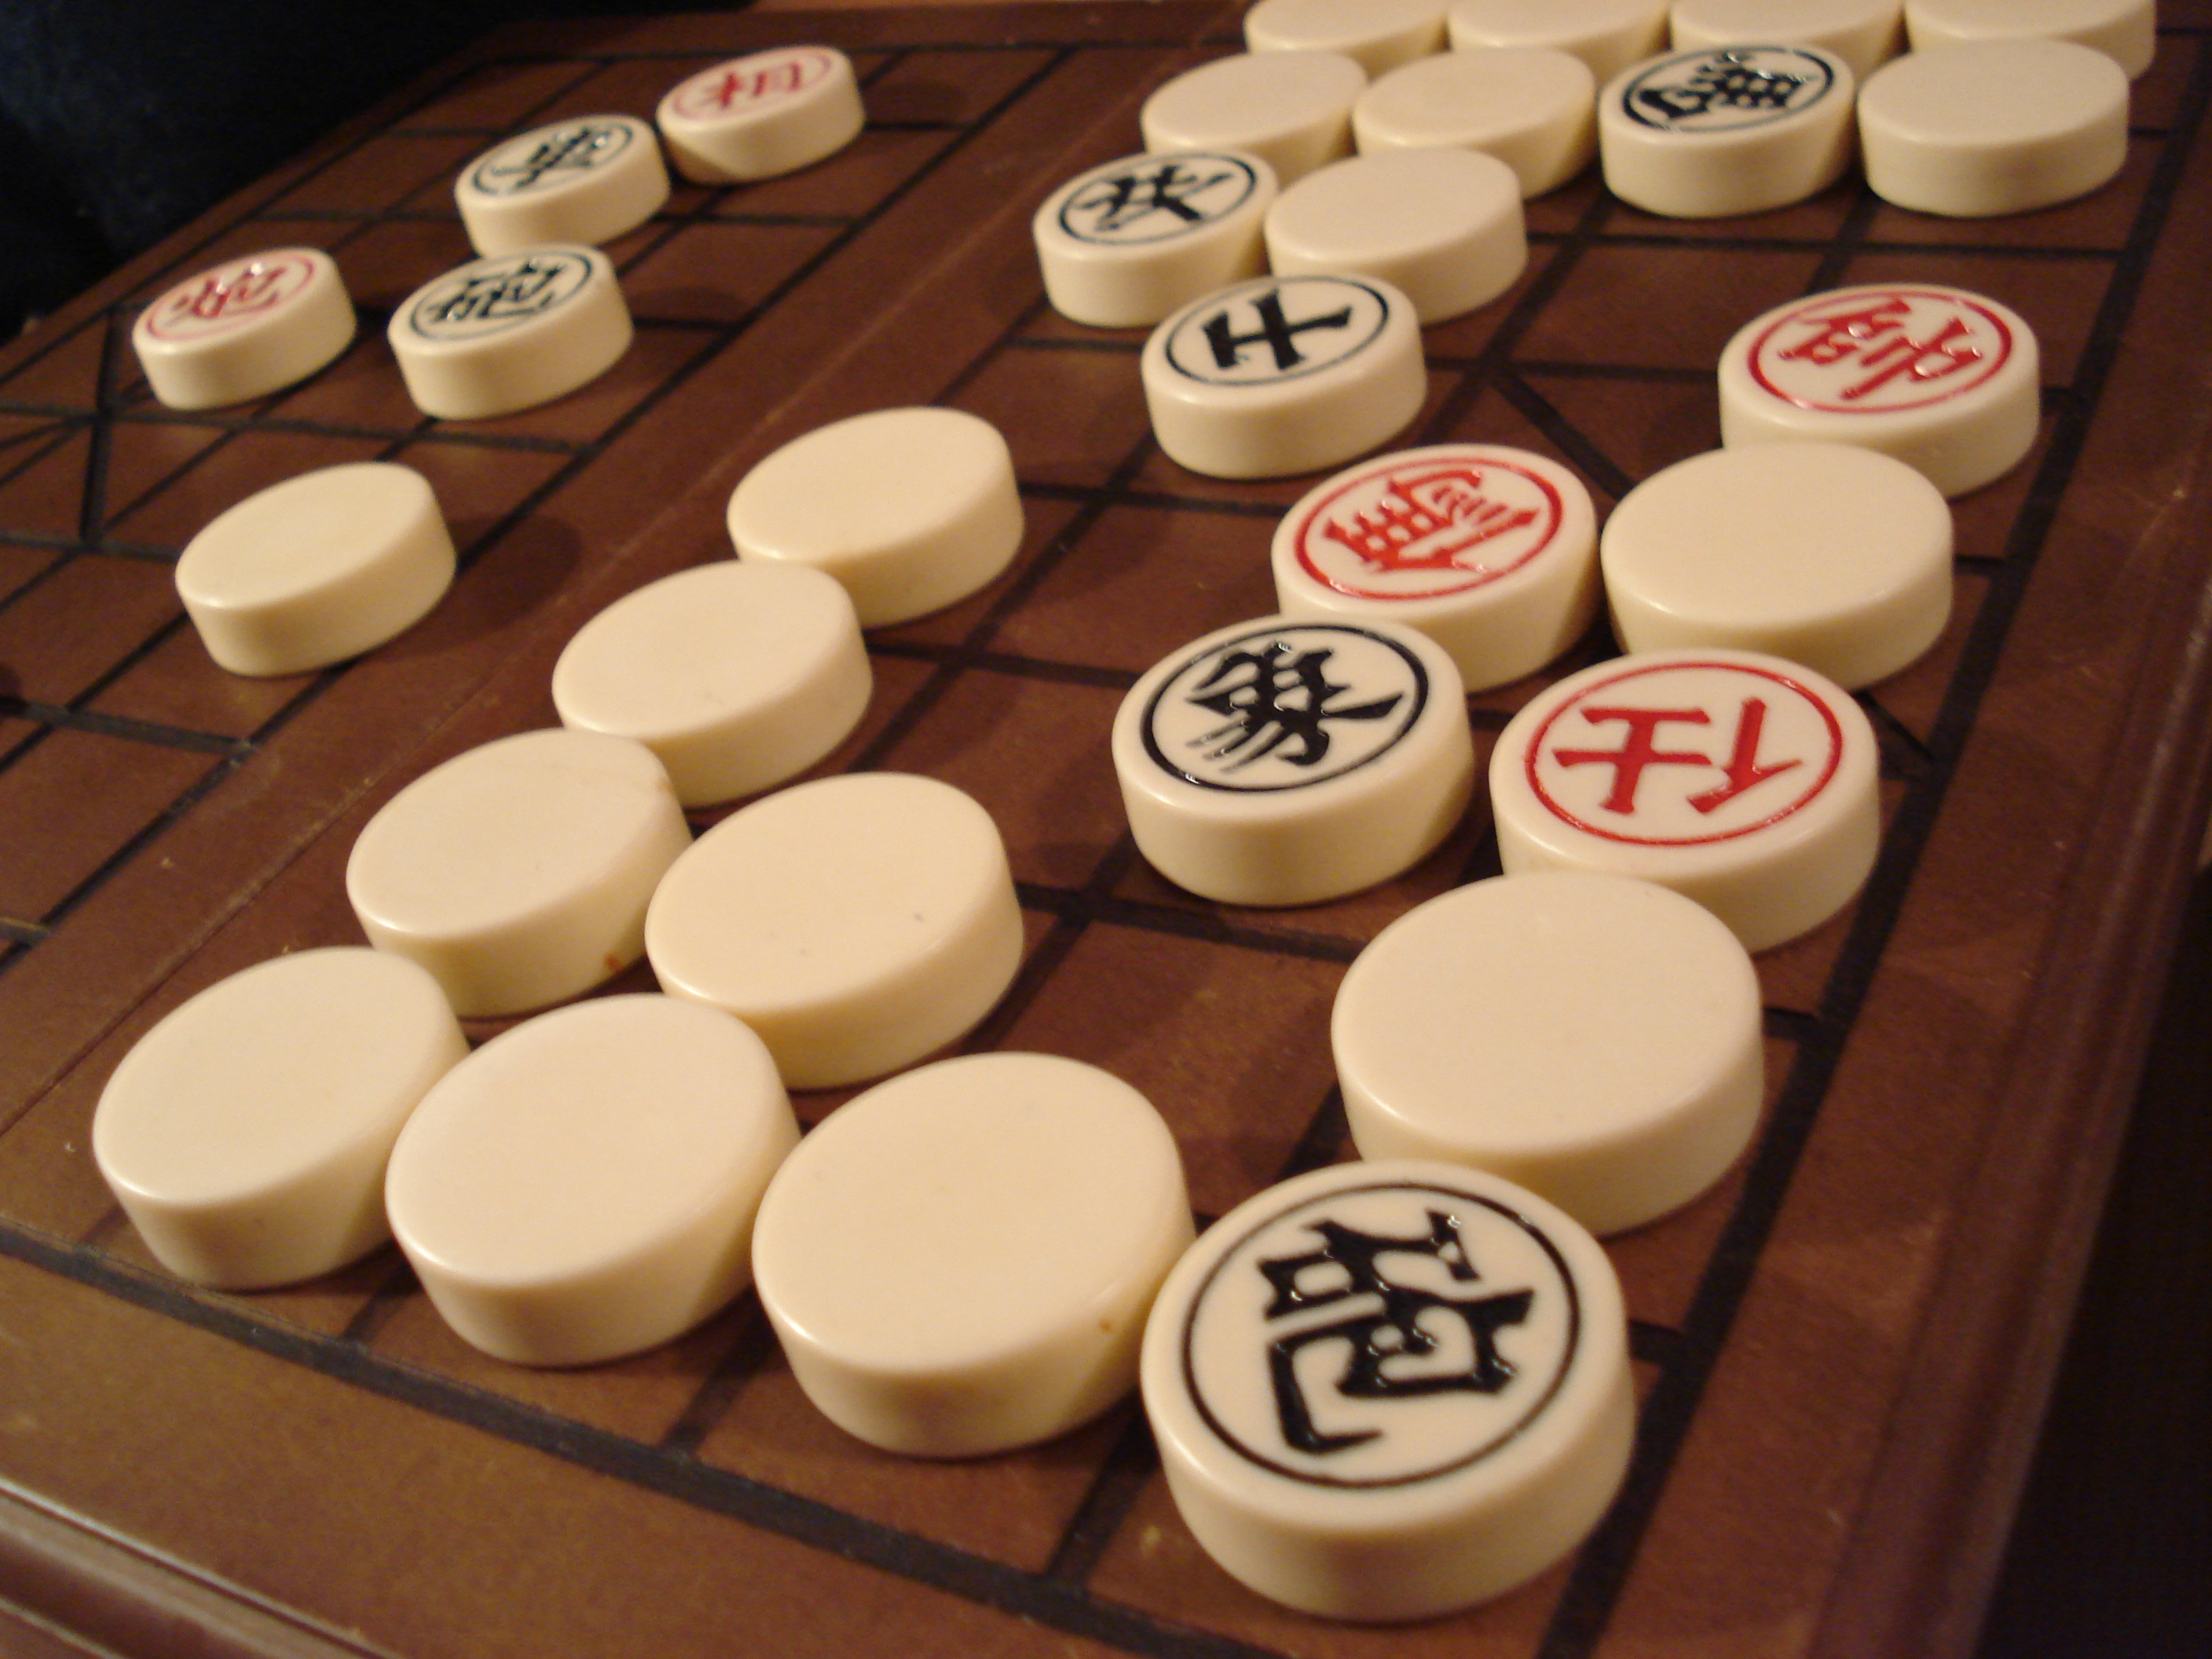 Banqi with Chinese chess pieces